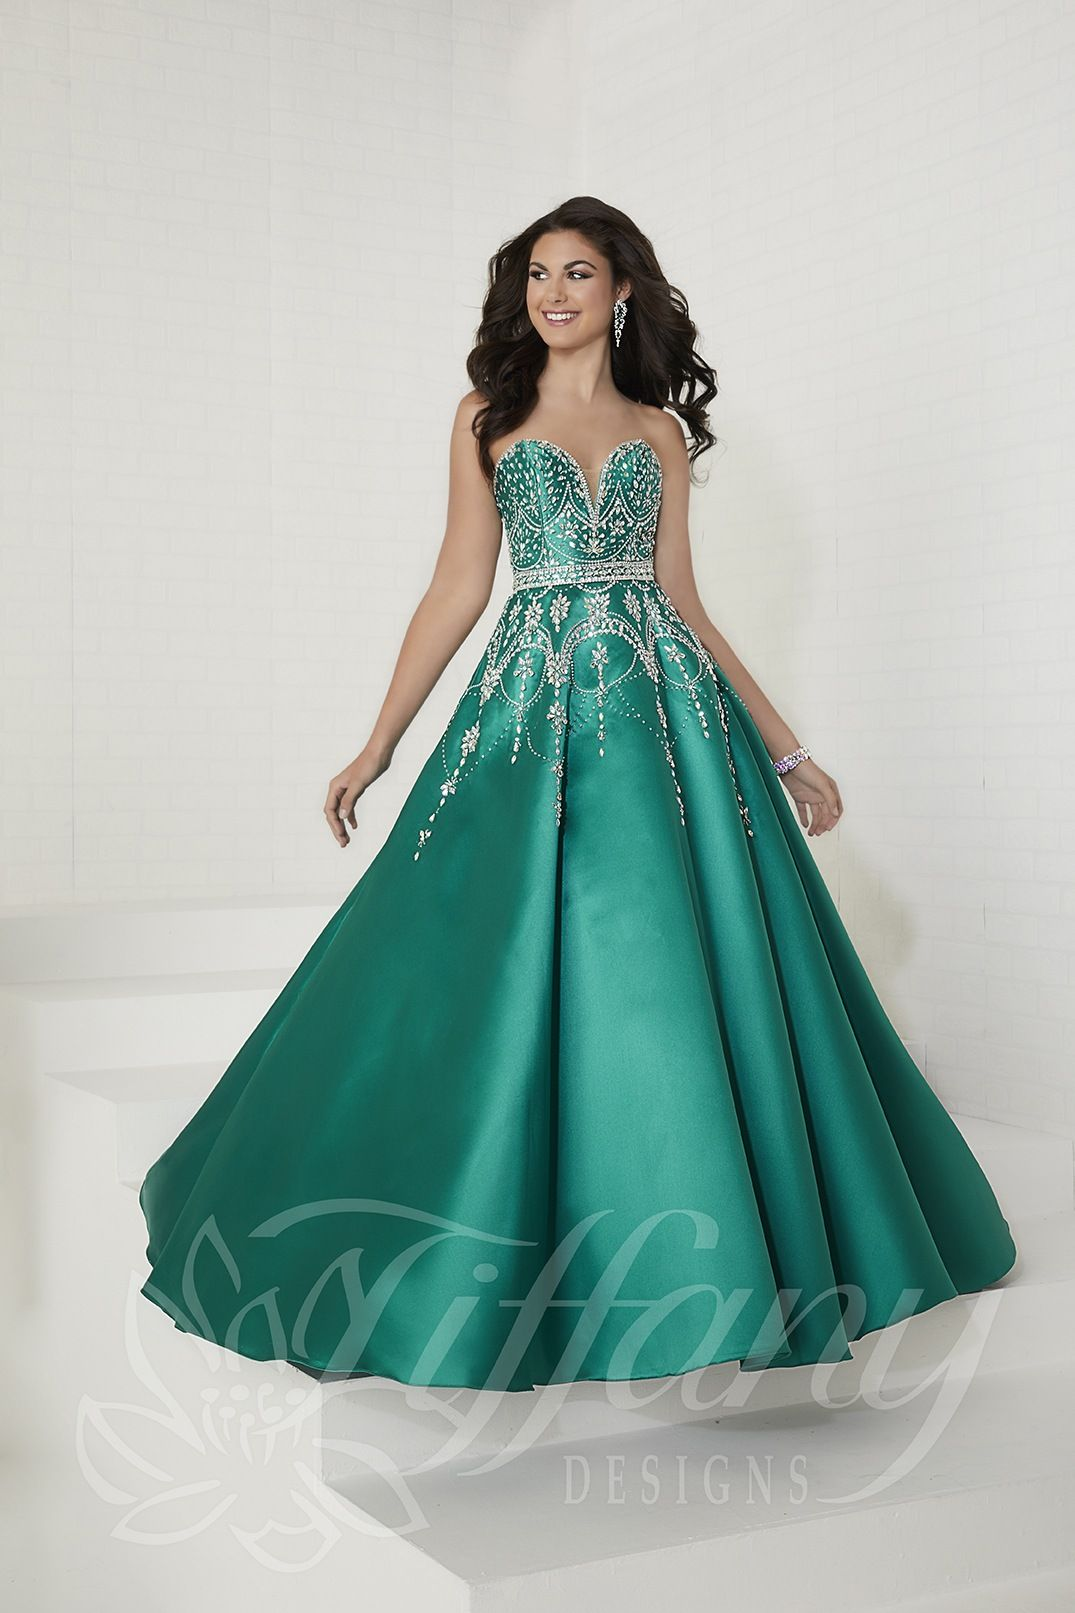 Wonderful Prom Dress House Gallery - Wedding Ideas - memiocall.com